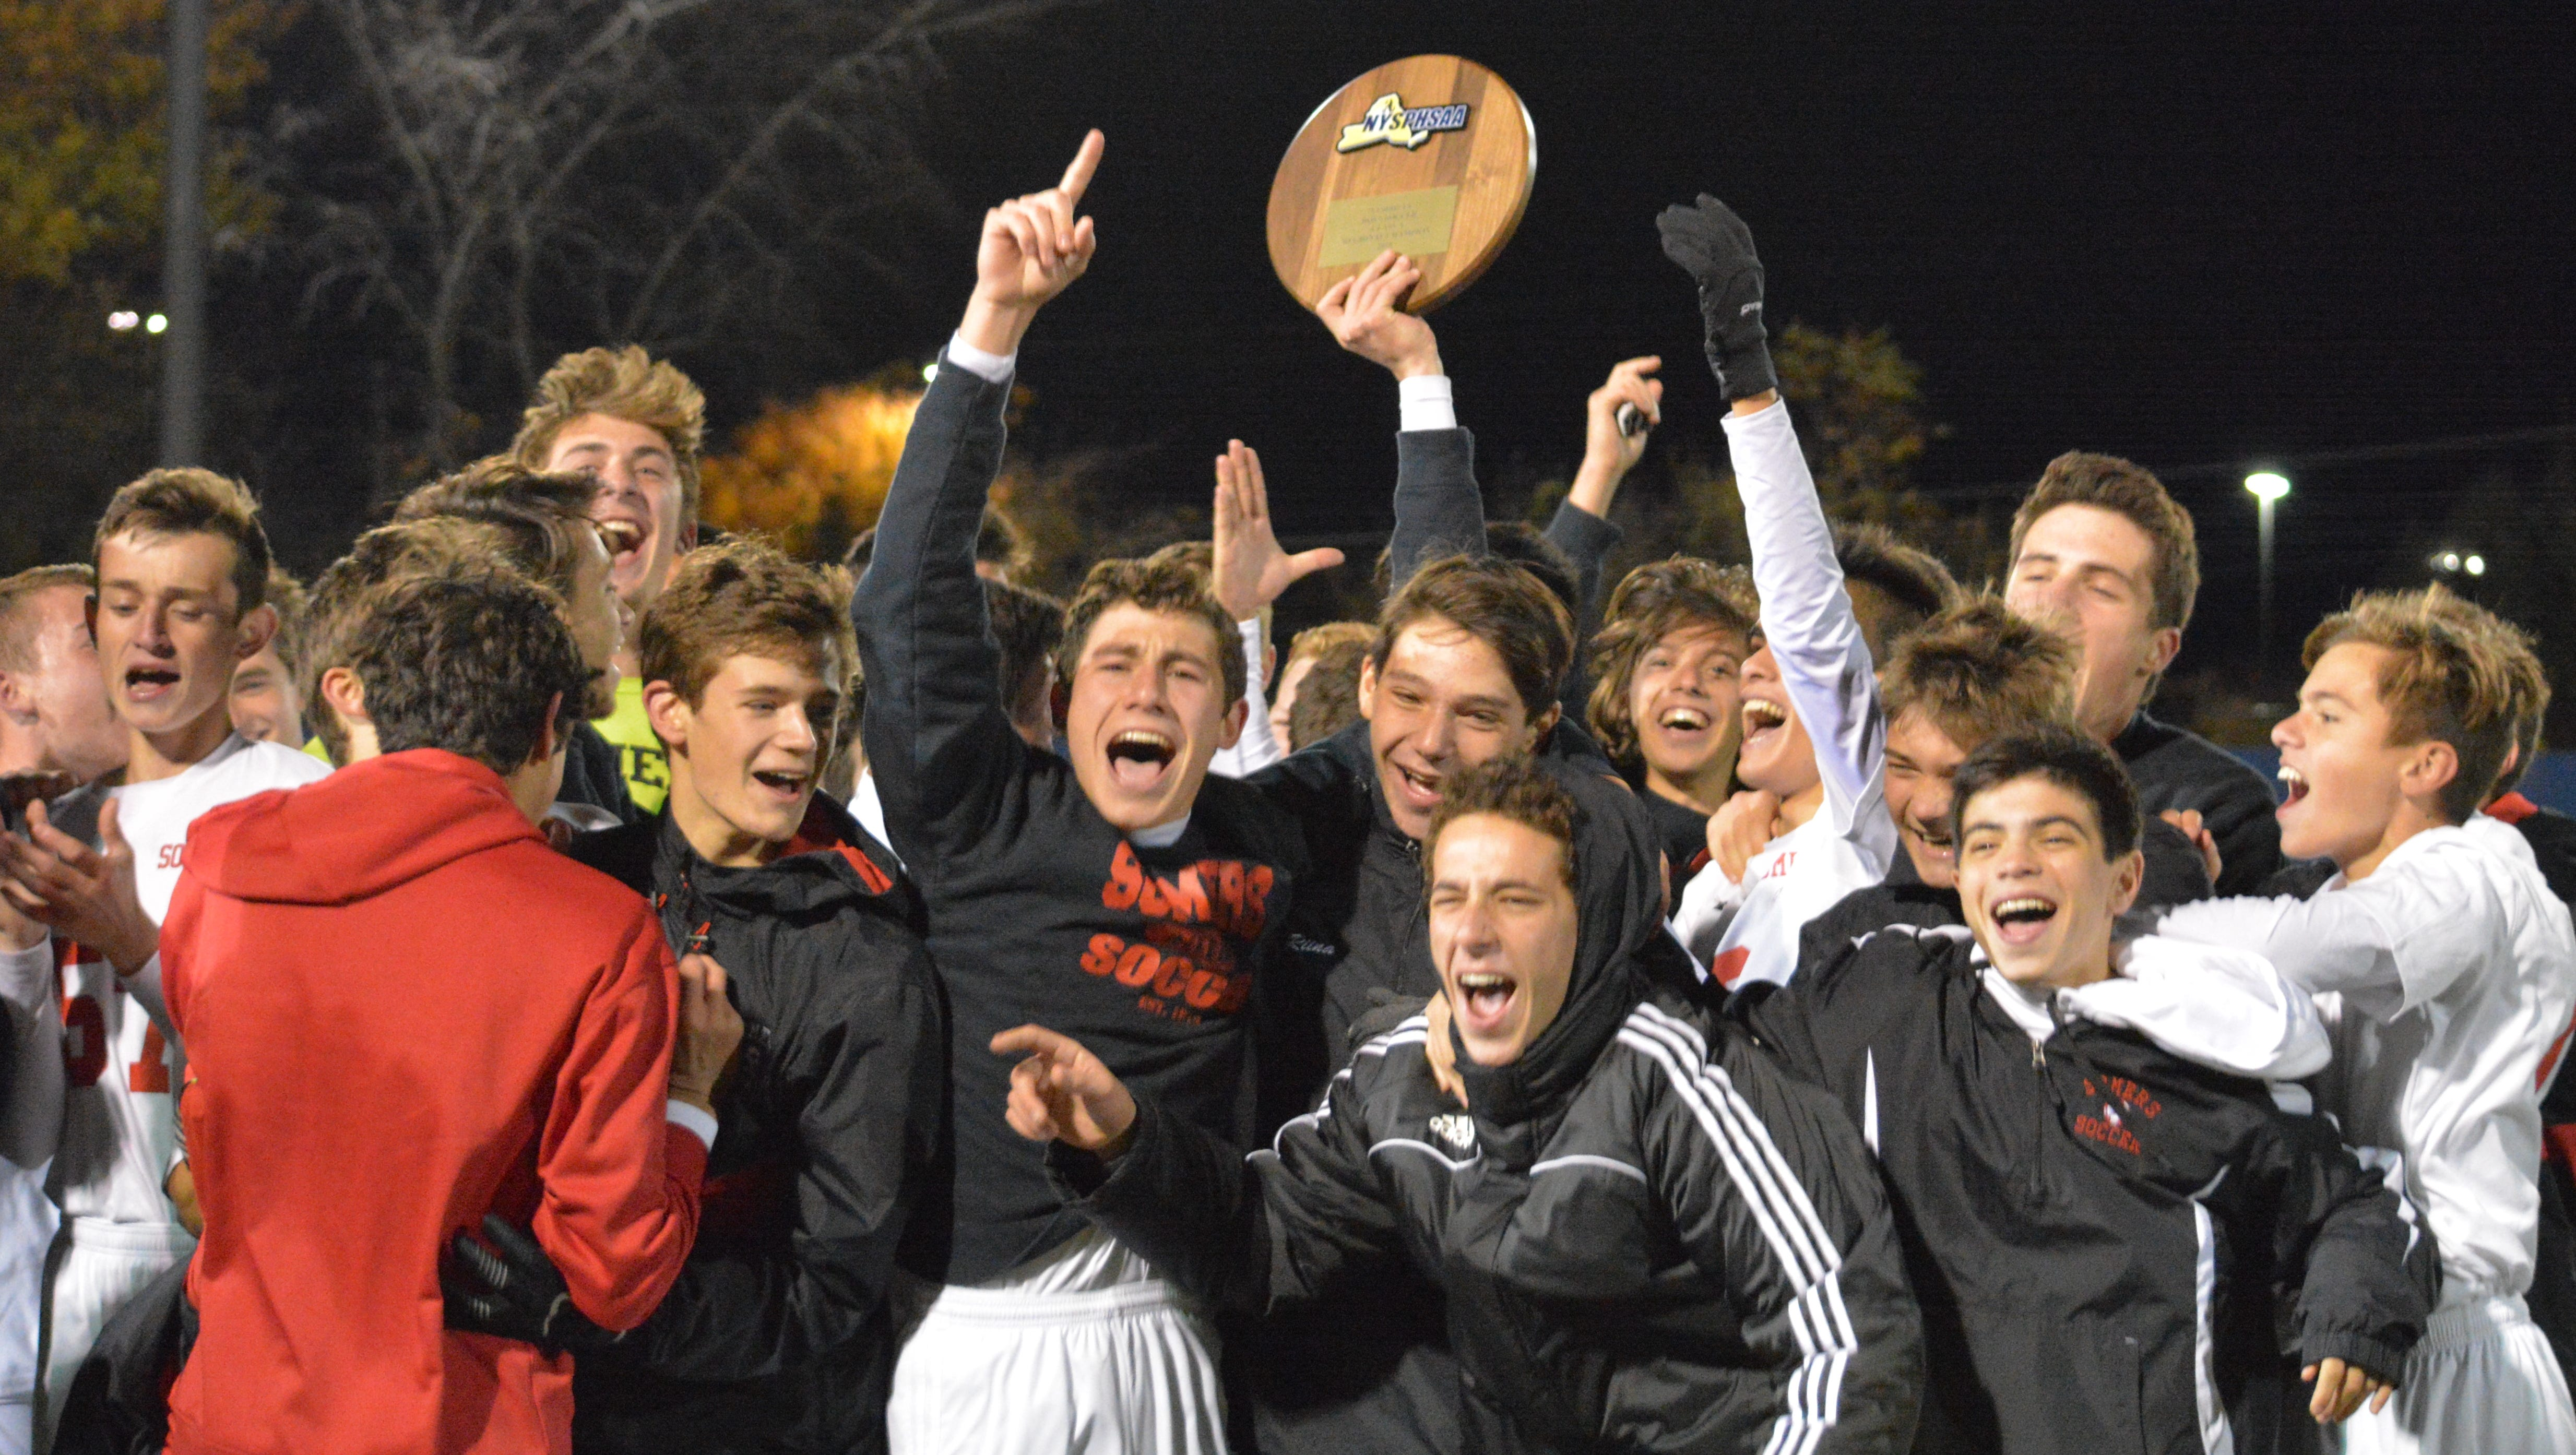 Somers celebrates after winning its second NYSPHSAA Class A regional title in three seasons with a 5-0 win over Cornwall on Saturday, Nov. 3, 2018 at Middletown High School.